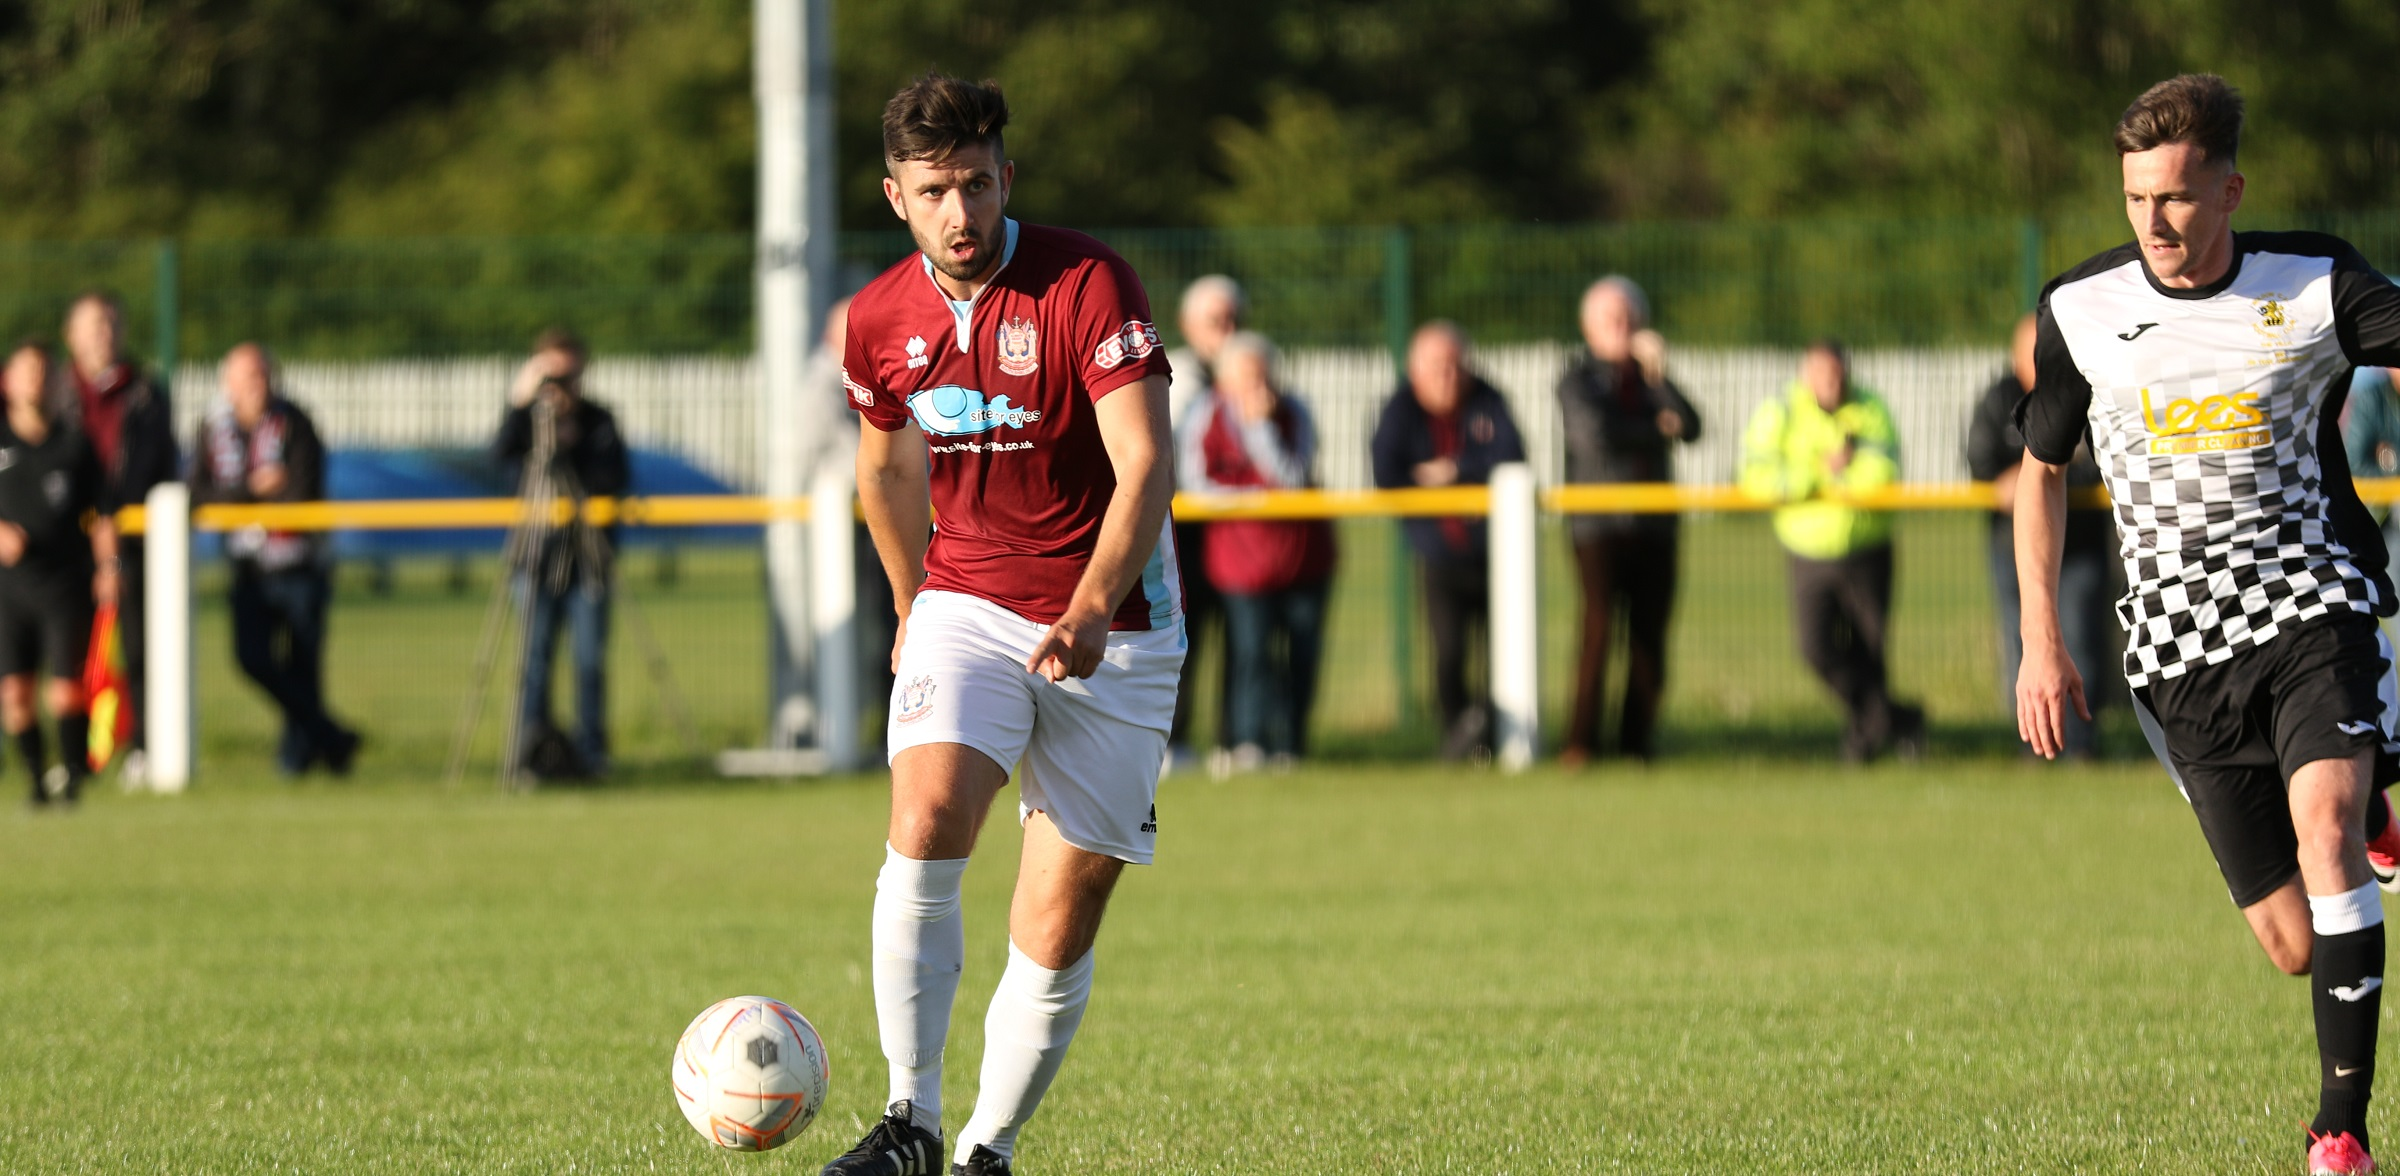 Adam Hutchinson added to squad after receiving clearance